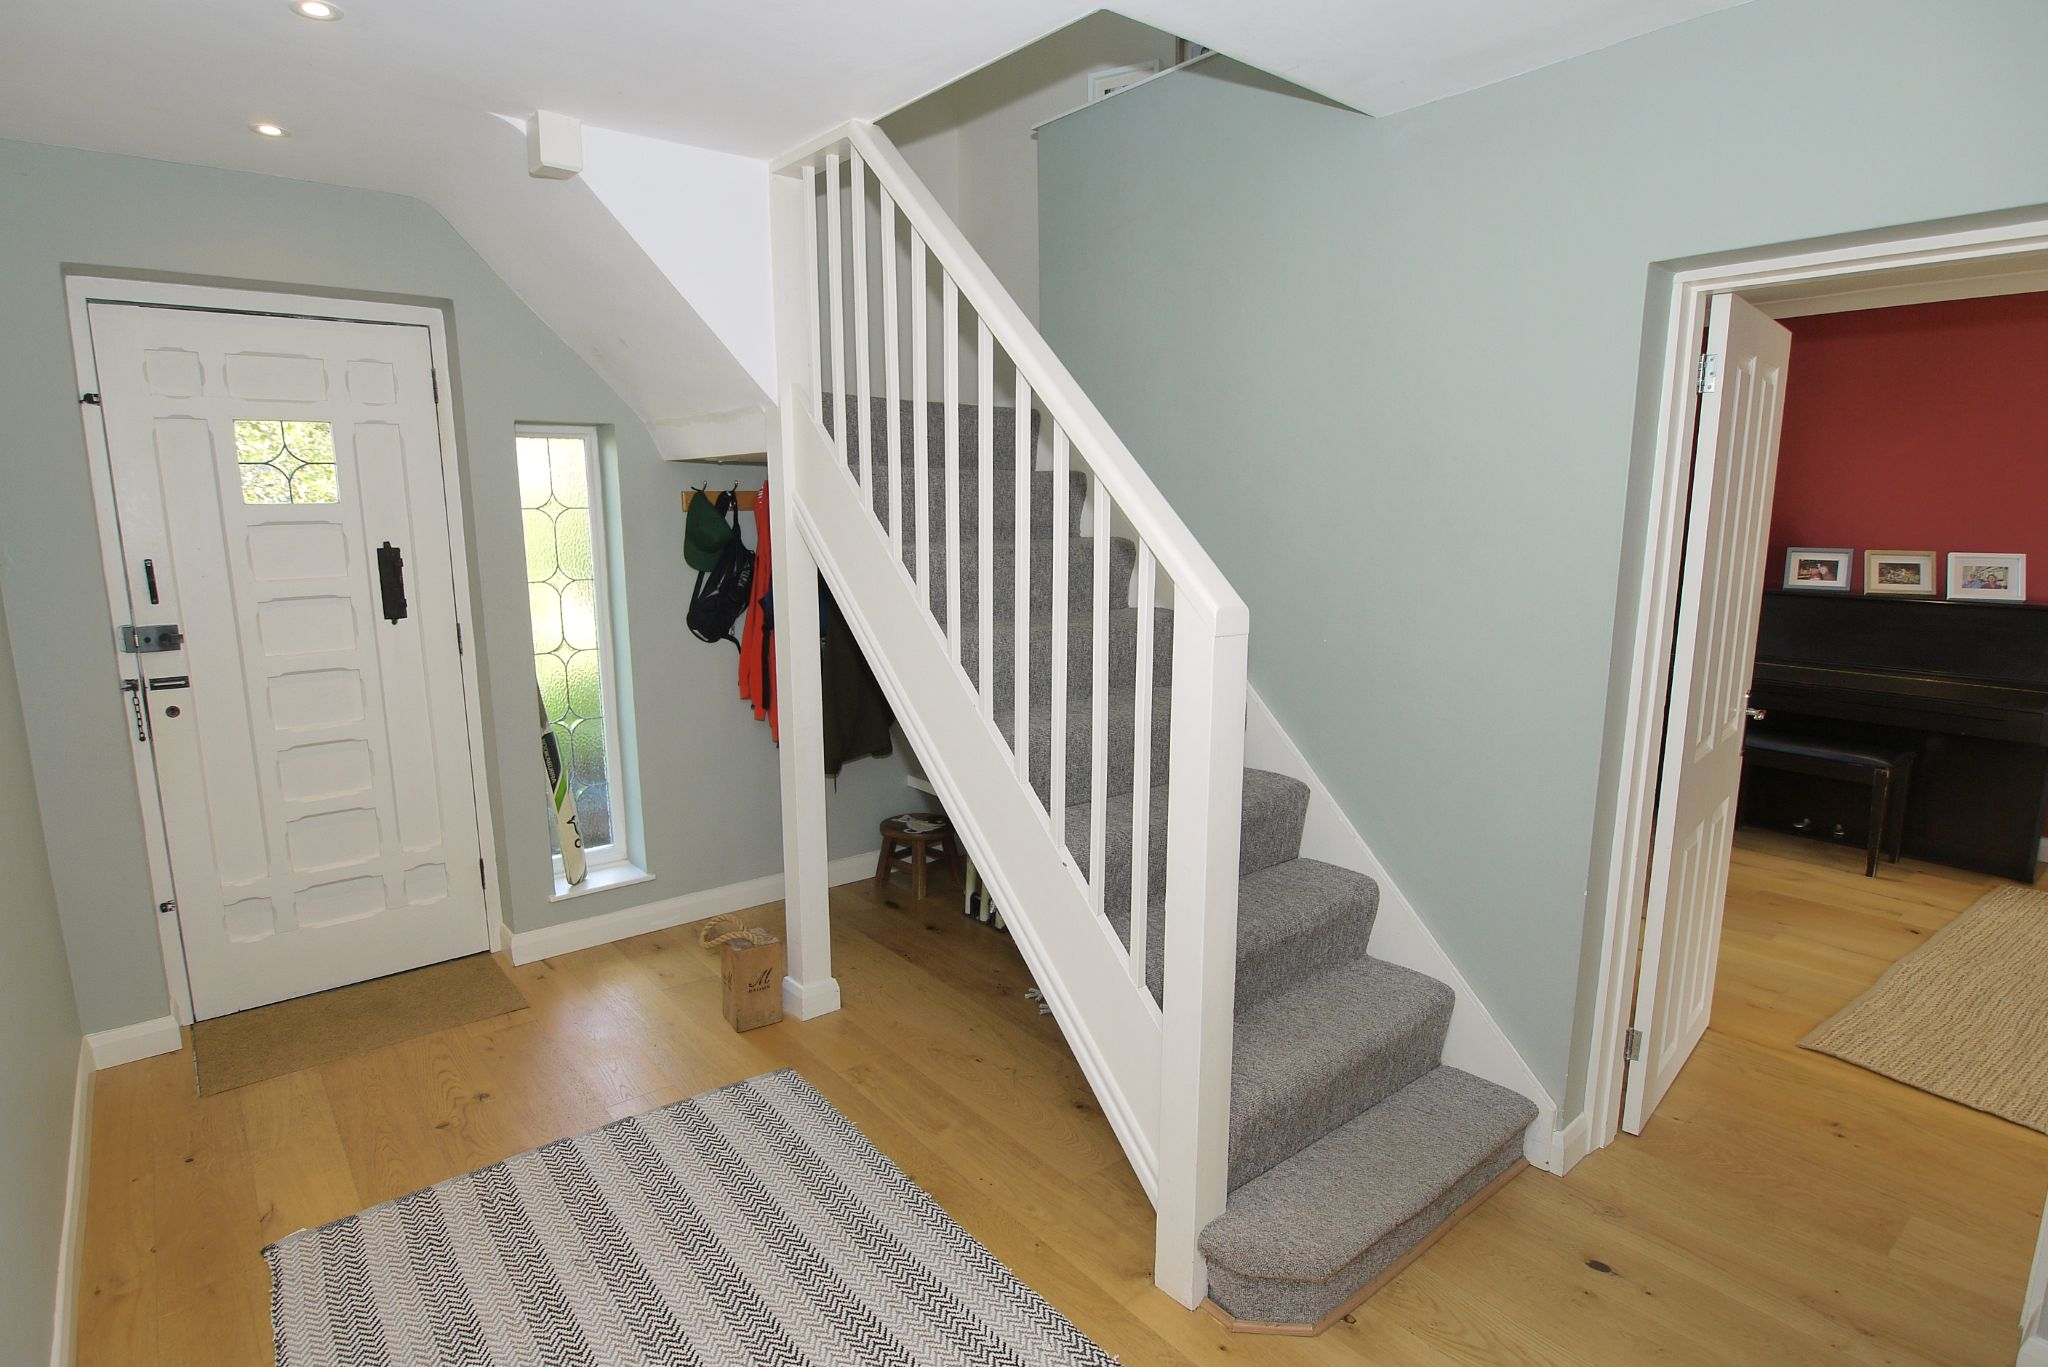 5 bedroom detached house For Sale in Sevenoaks - Photograph 7